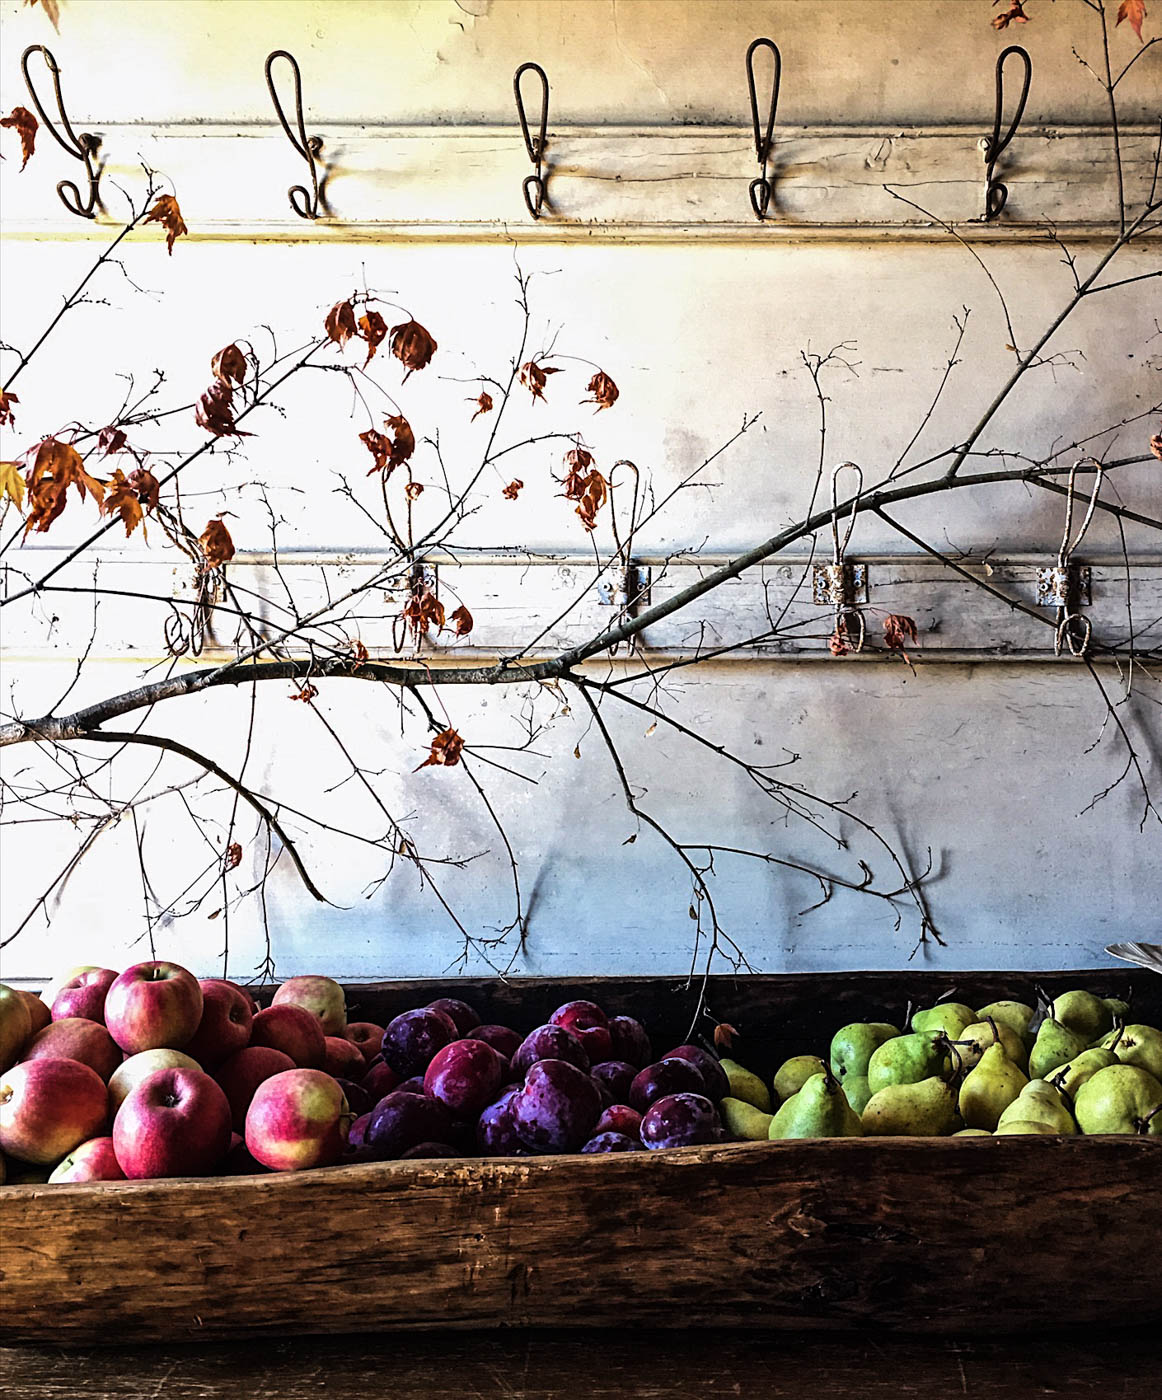 autumn apples, pears and plums